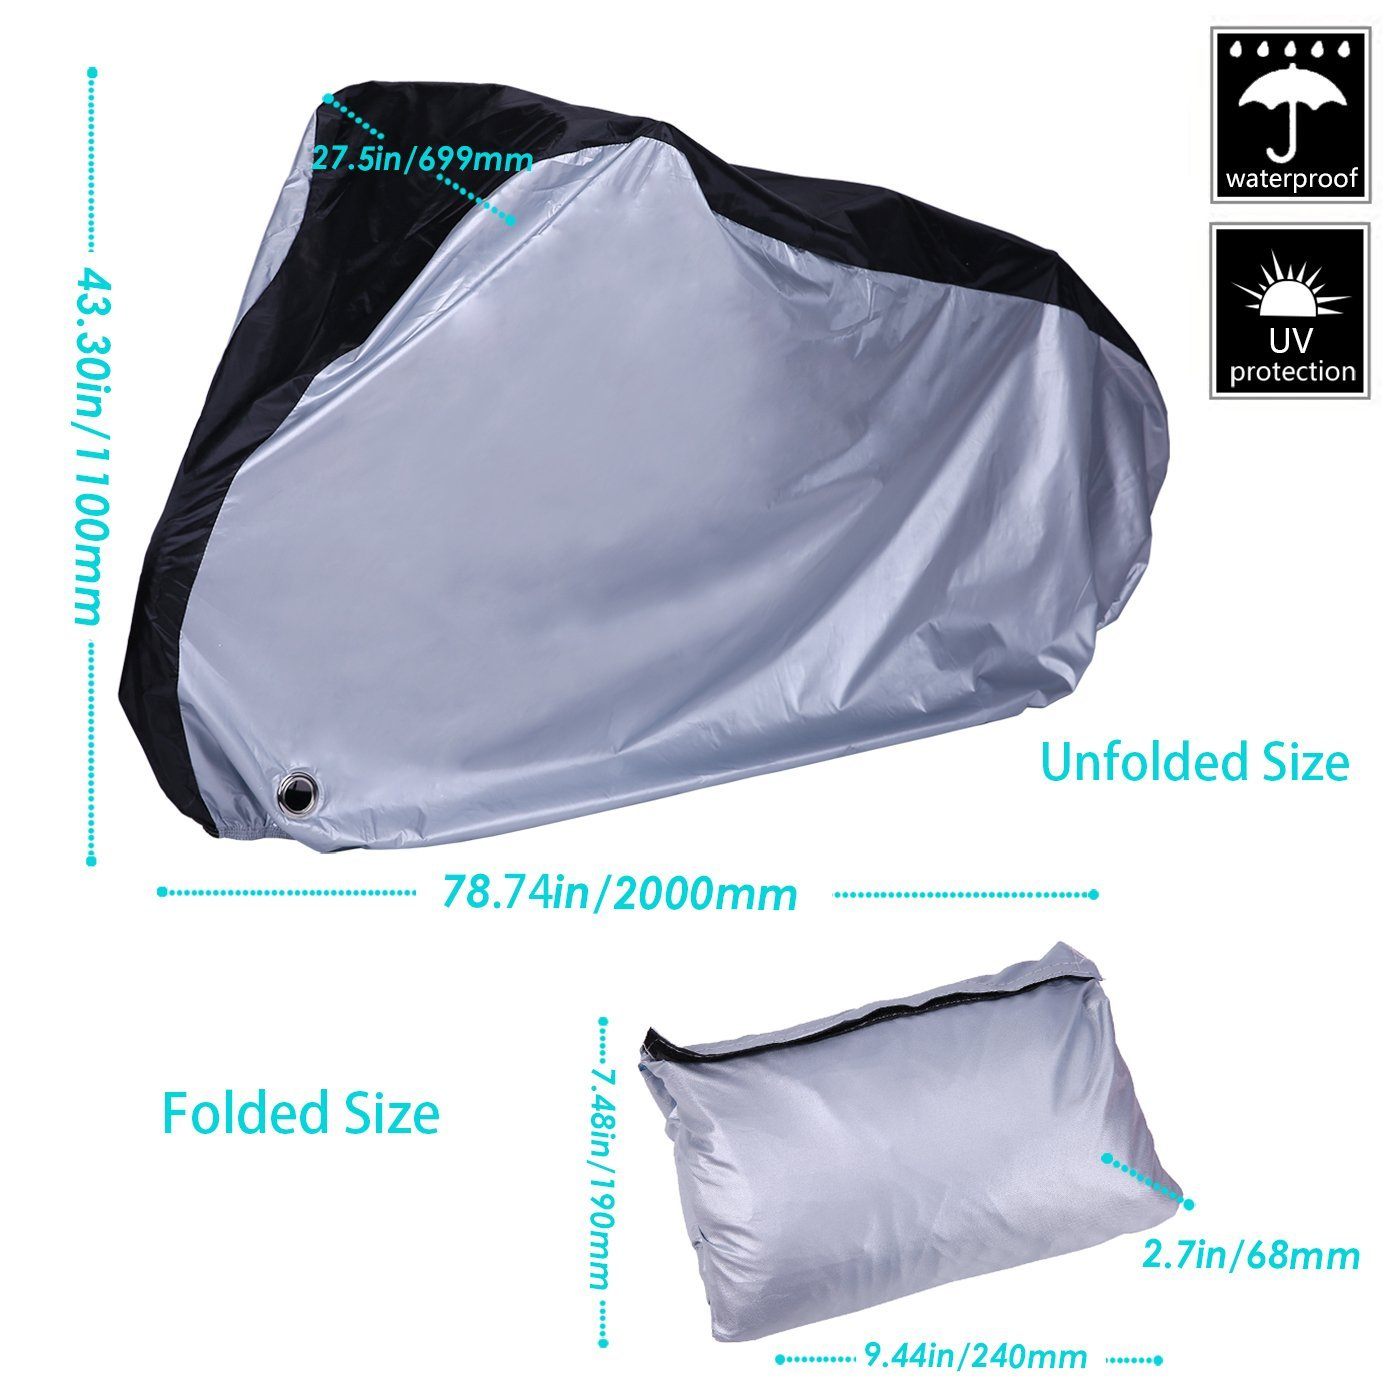 XL Silver and Black HDE Bike Cover Waterproof UV Protection Outdoor Indoor Bicycle Protector with Lock Hole for Bikes with Wheel Size Up to 29 inches